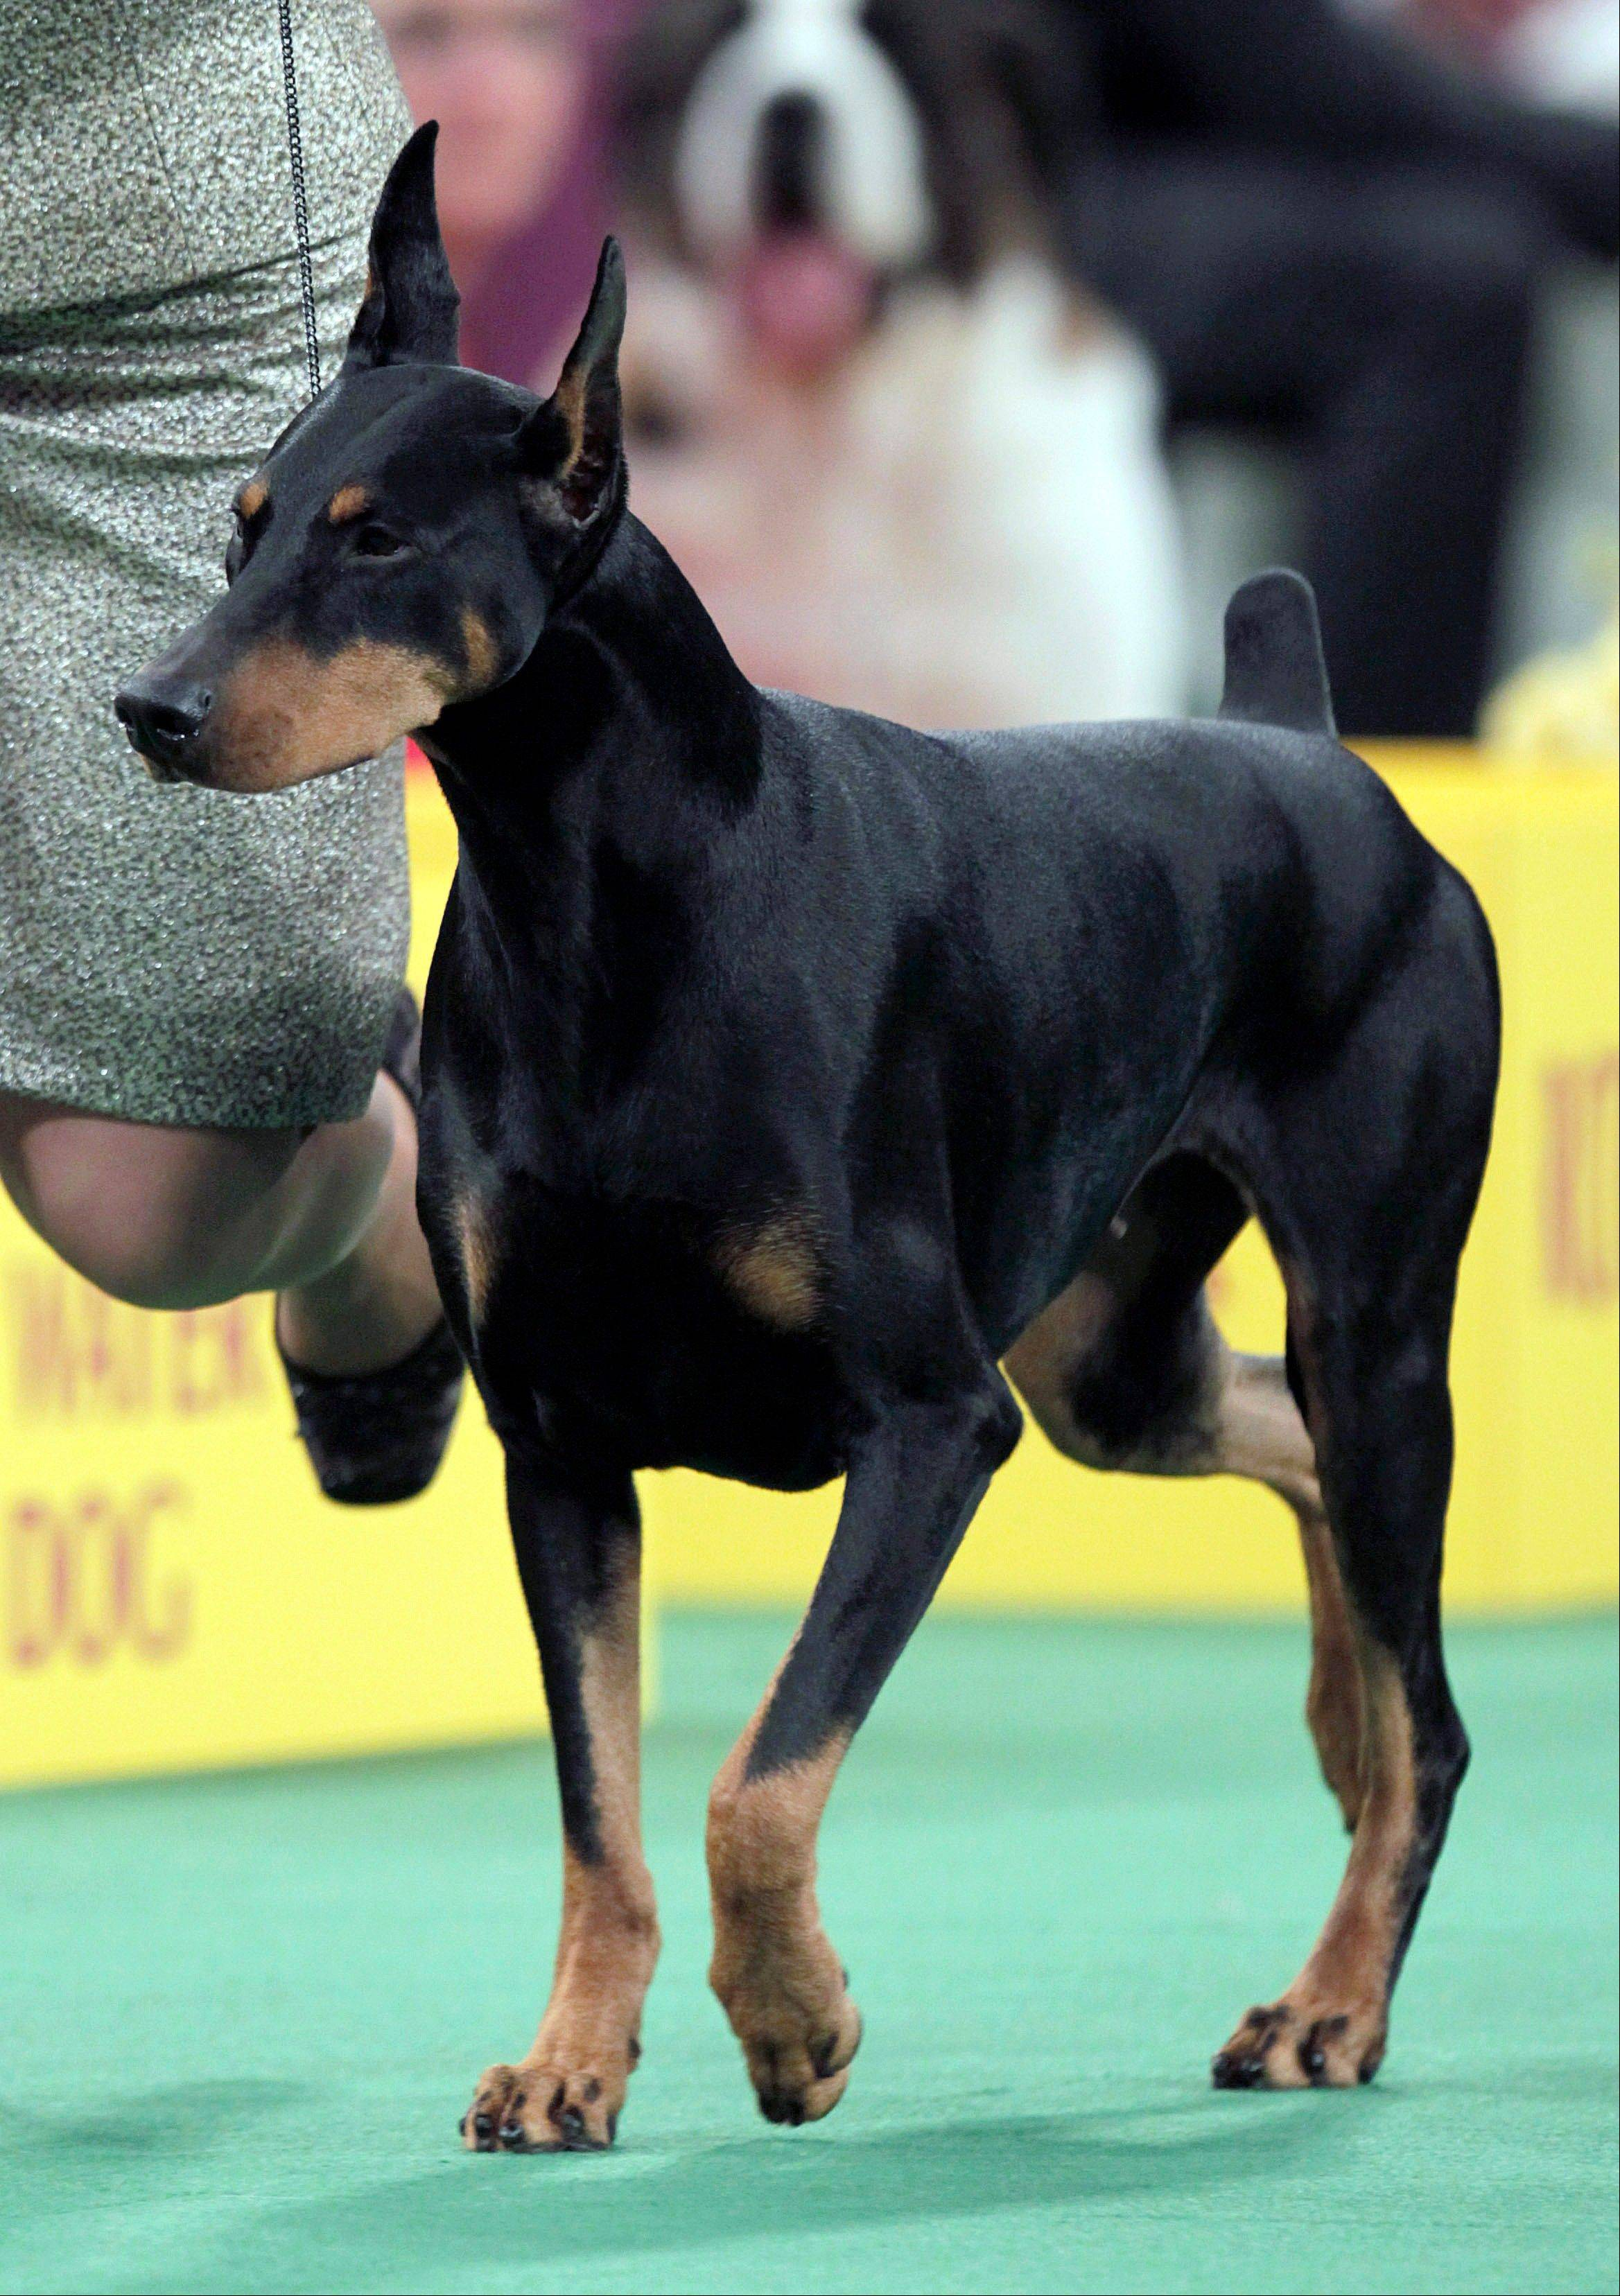 Protocol's Veni Vidi Vici, a Doberman pinscher, who won its group, runs during the judging of the Working Group at last February's Westminster Kennel Club dog show in New York. Oakley, a German wirehaired pointer, along with Veni Vidi Vici are top contenders for next week's 137th Westminster Kennel Club dog show.